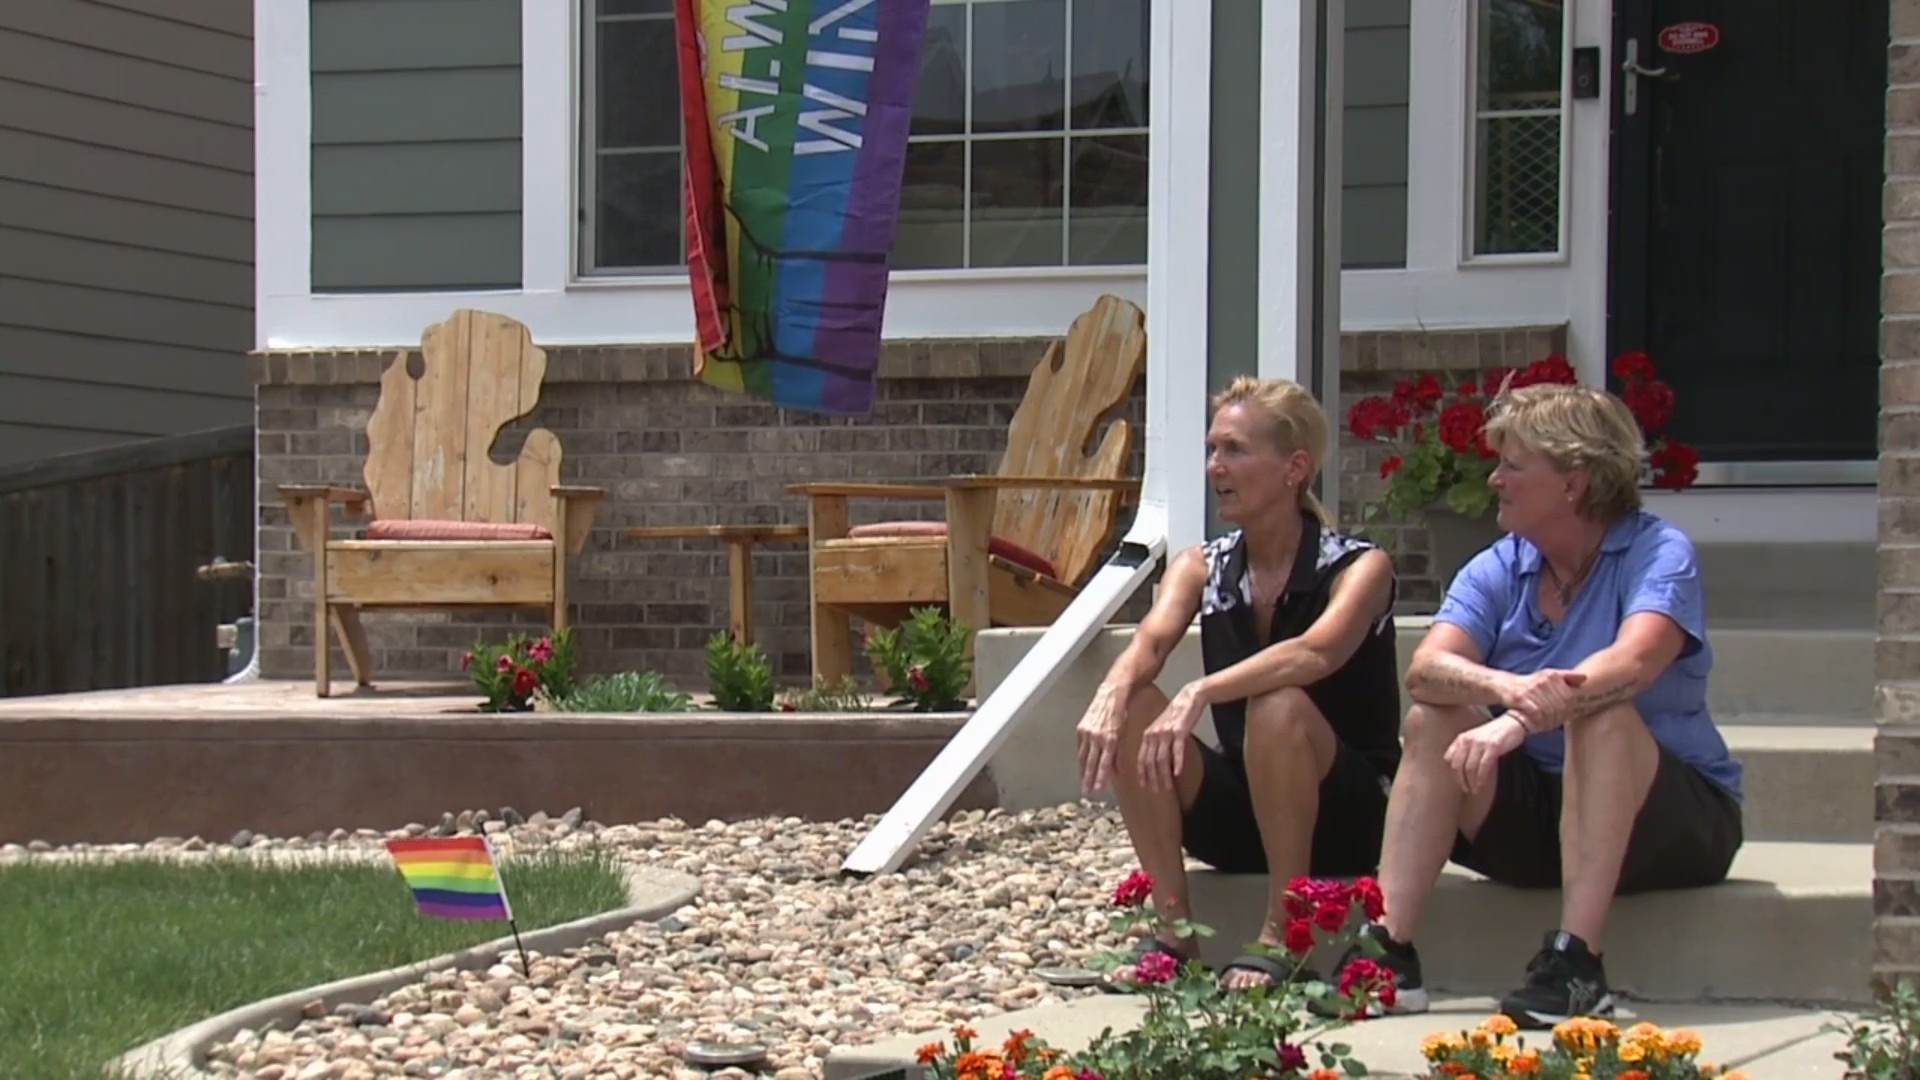 2 women sitting in front of their home with a rainbow flag nearby